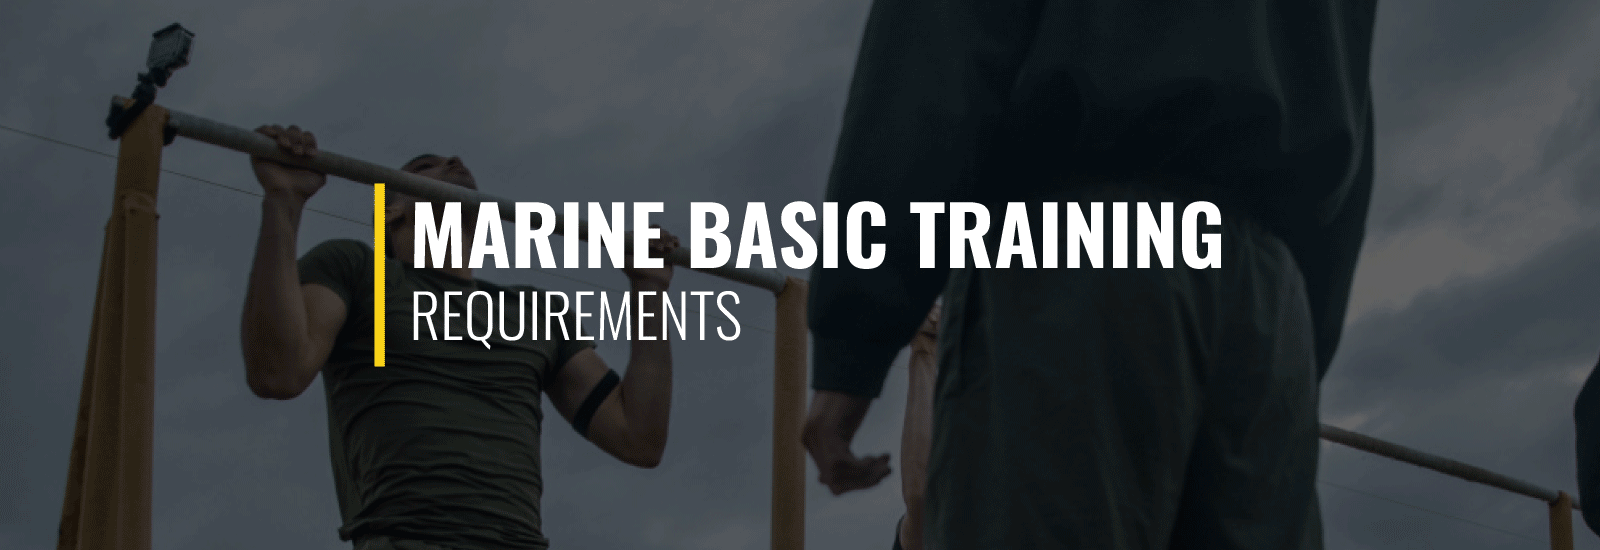 Marine Basic Training Requirements